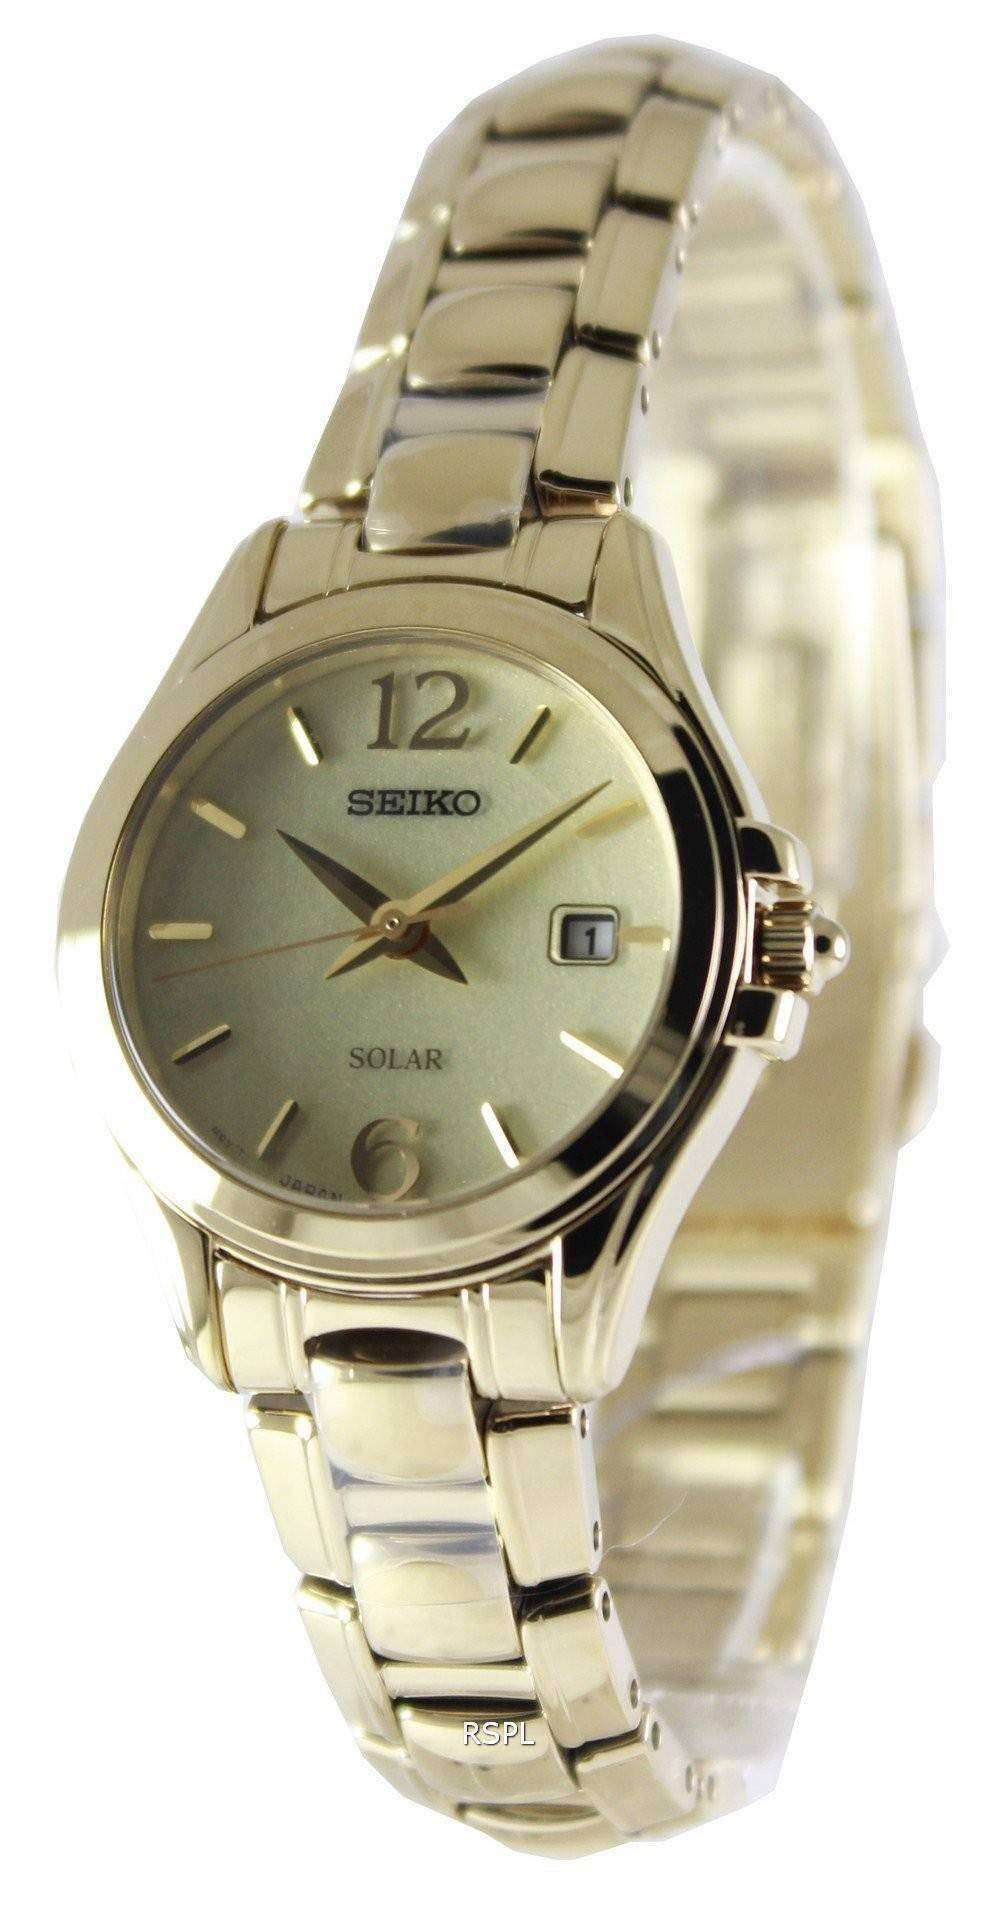 Seiko solar power reserve sut236p1 sut236p women 39 s watch for Solar power watches